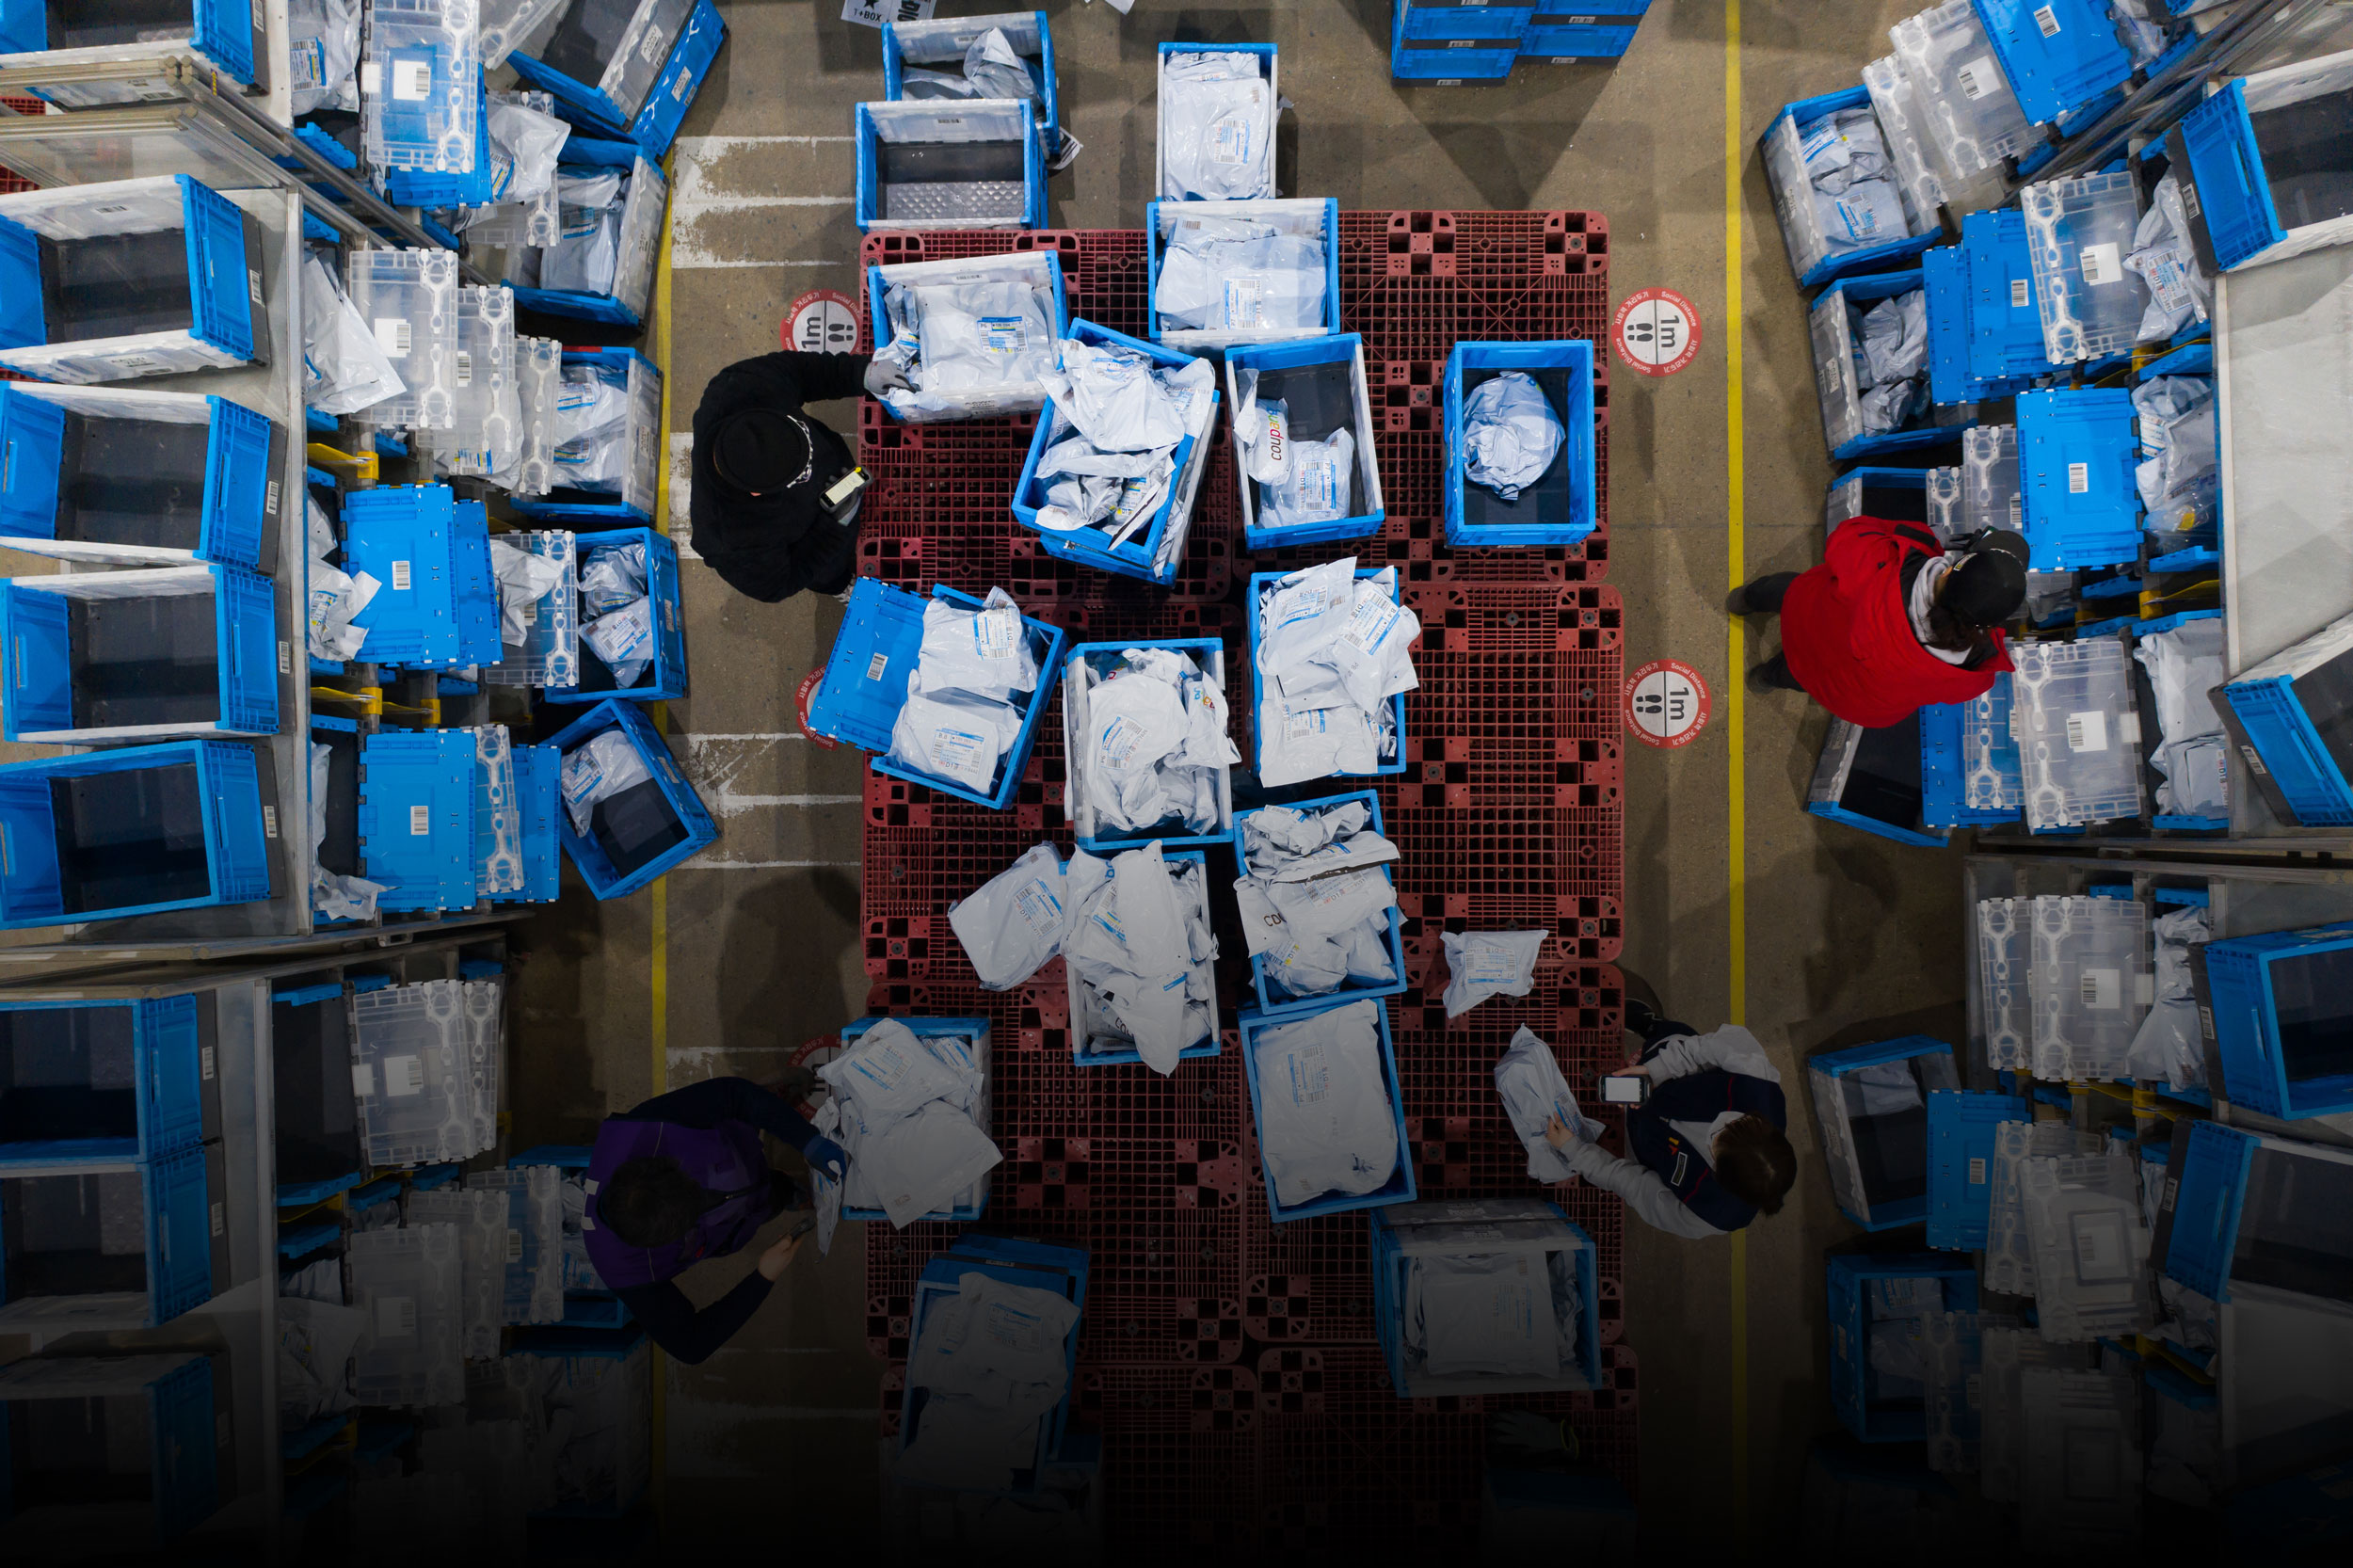 overhead photograph showing a logistics center with employees surrounded by boxes